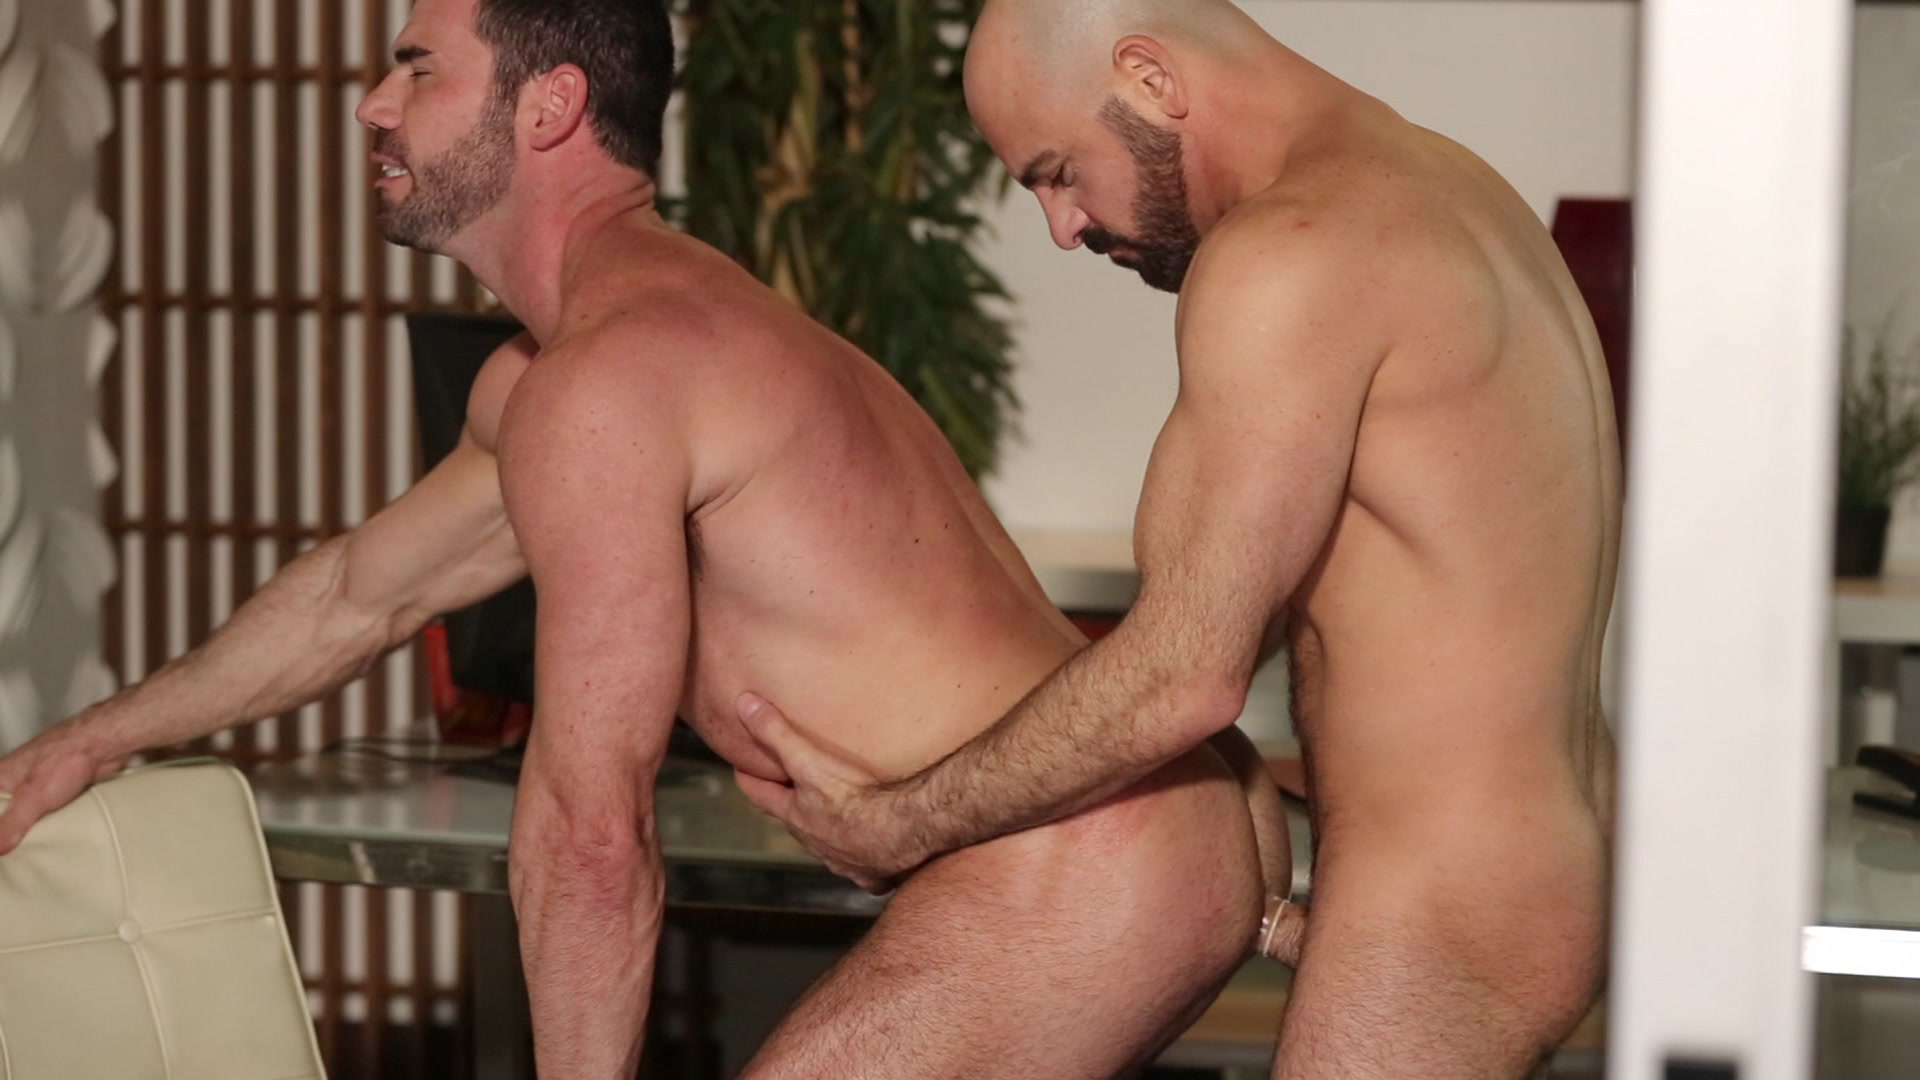 Adam Ruso Porn gay porn videos, dvds & sex toys @ gay dvd empire